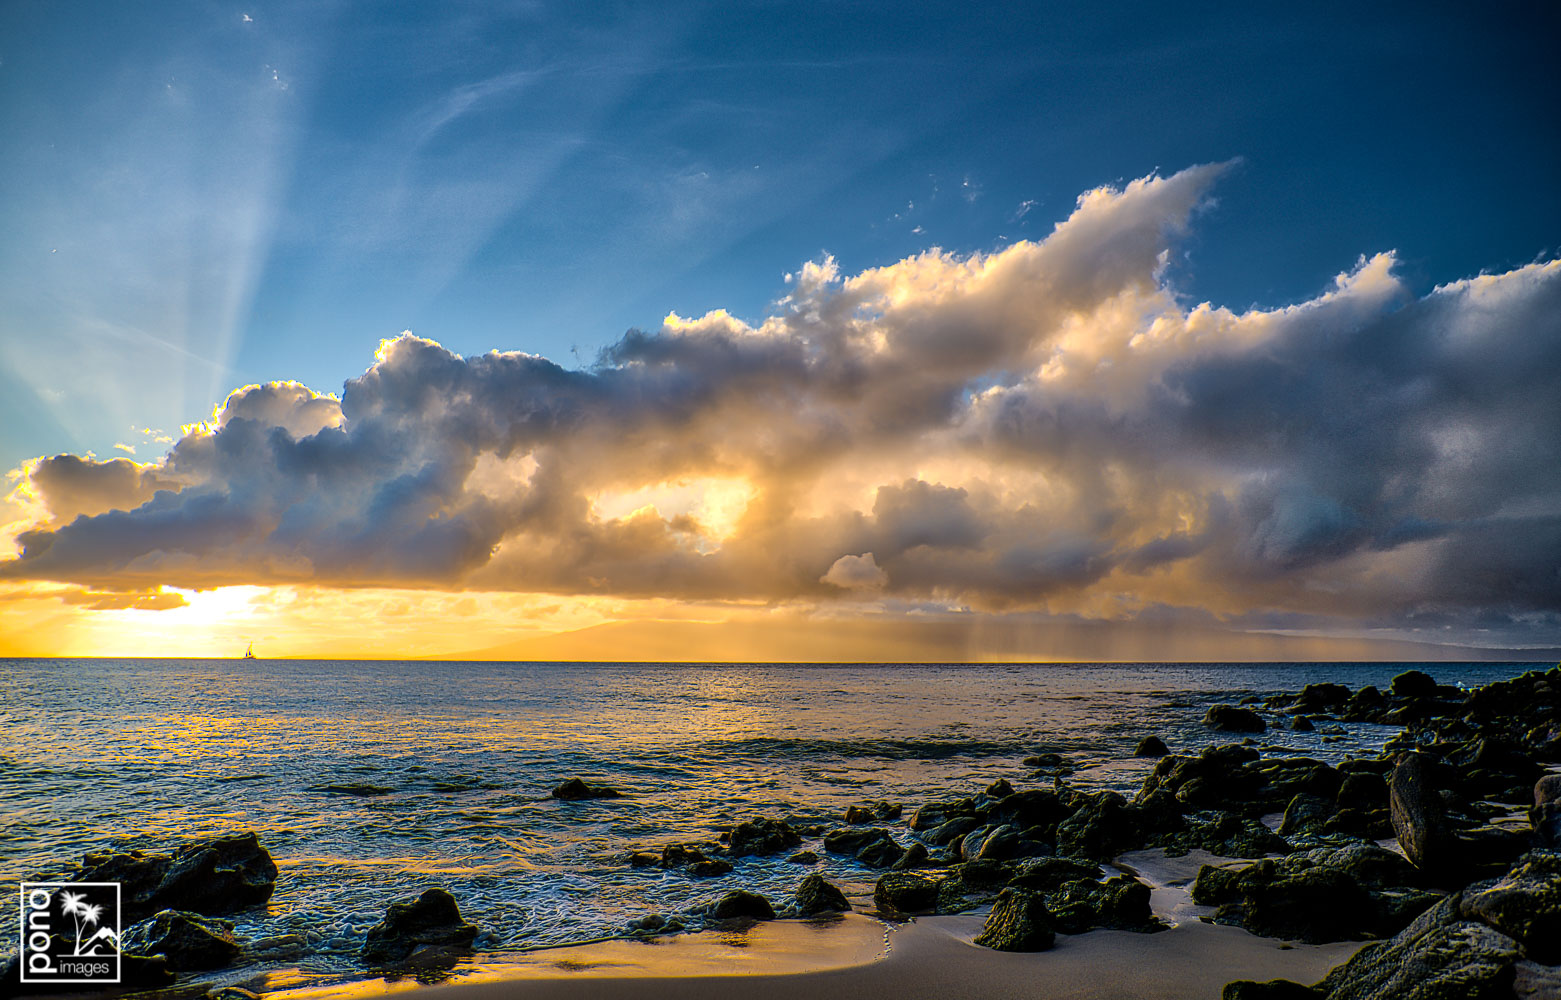 Moloka'i Sunset Showers | Pono Images